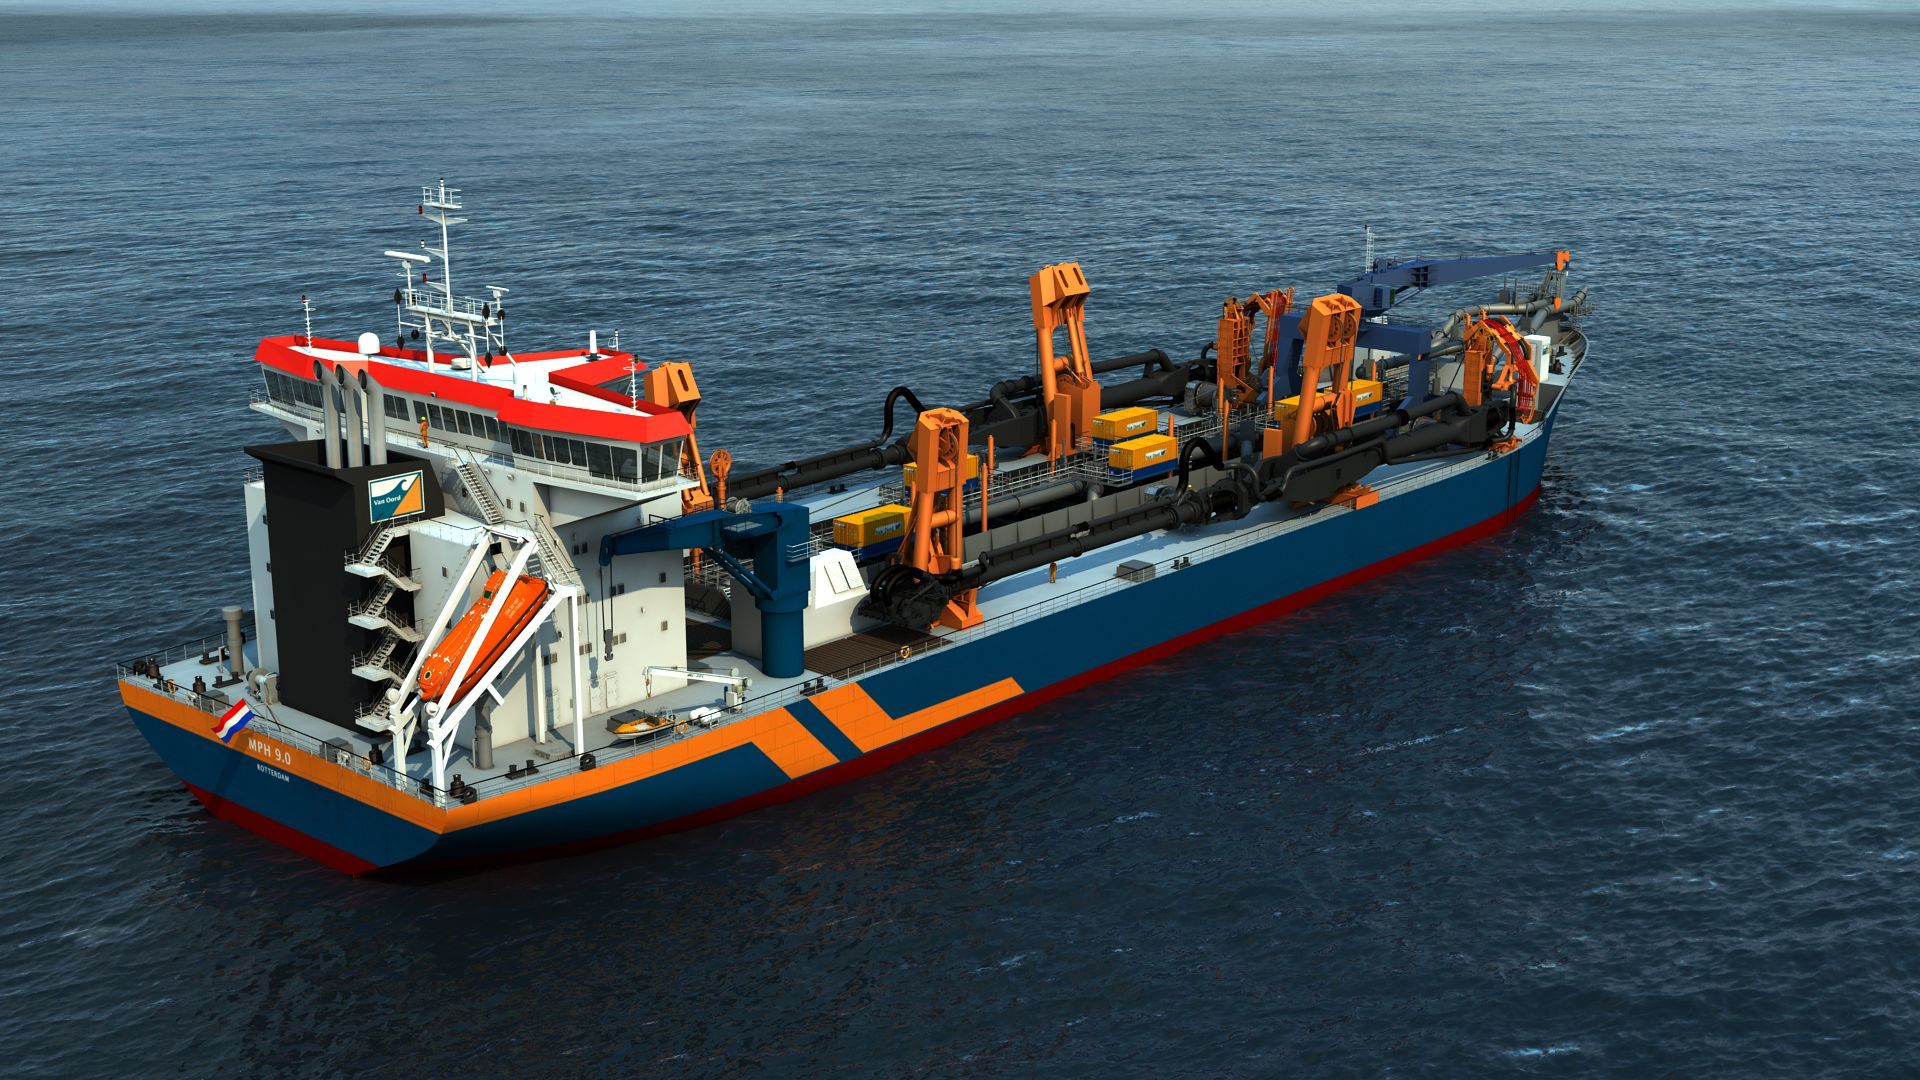 Dutch dredging major Van Oord has ordered two trailing suction